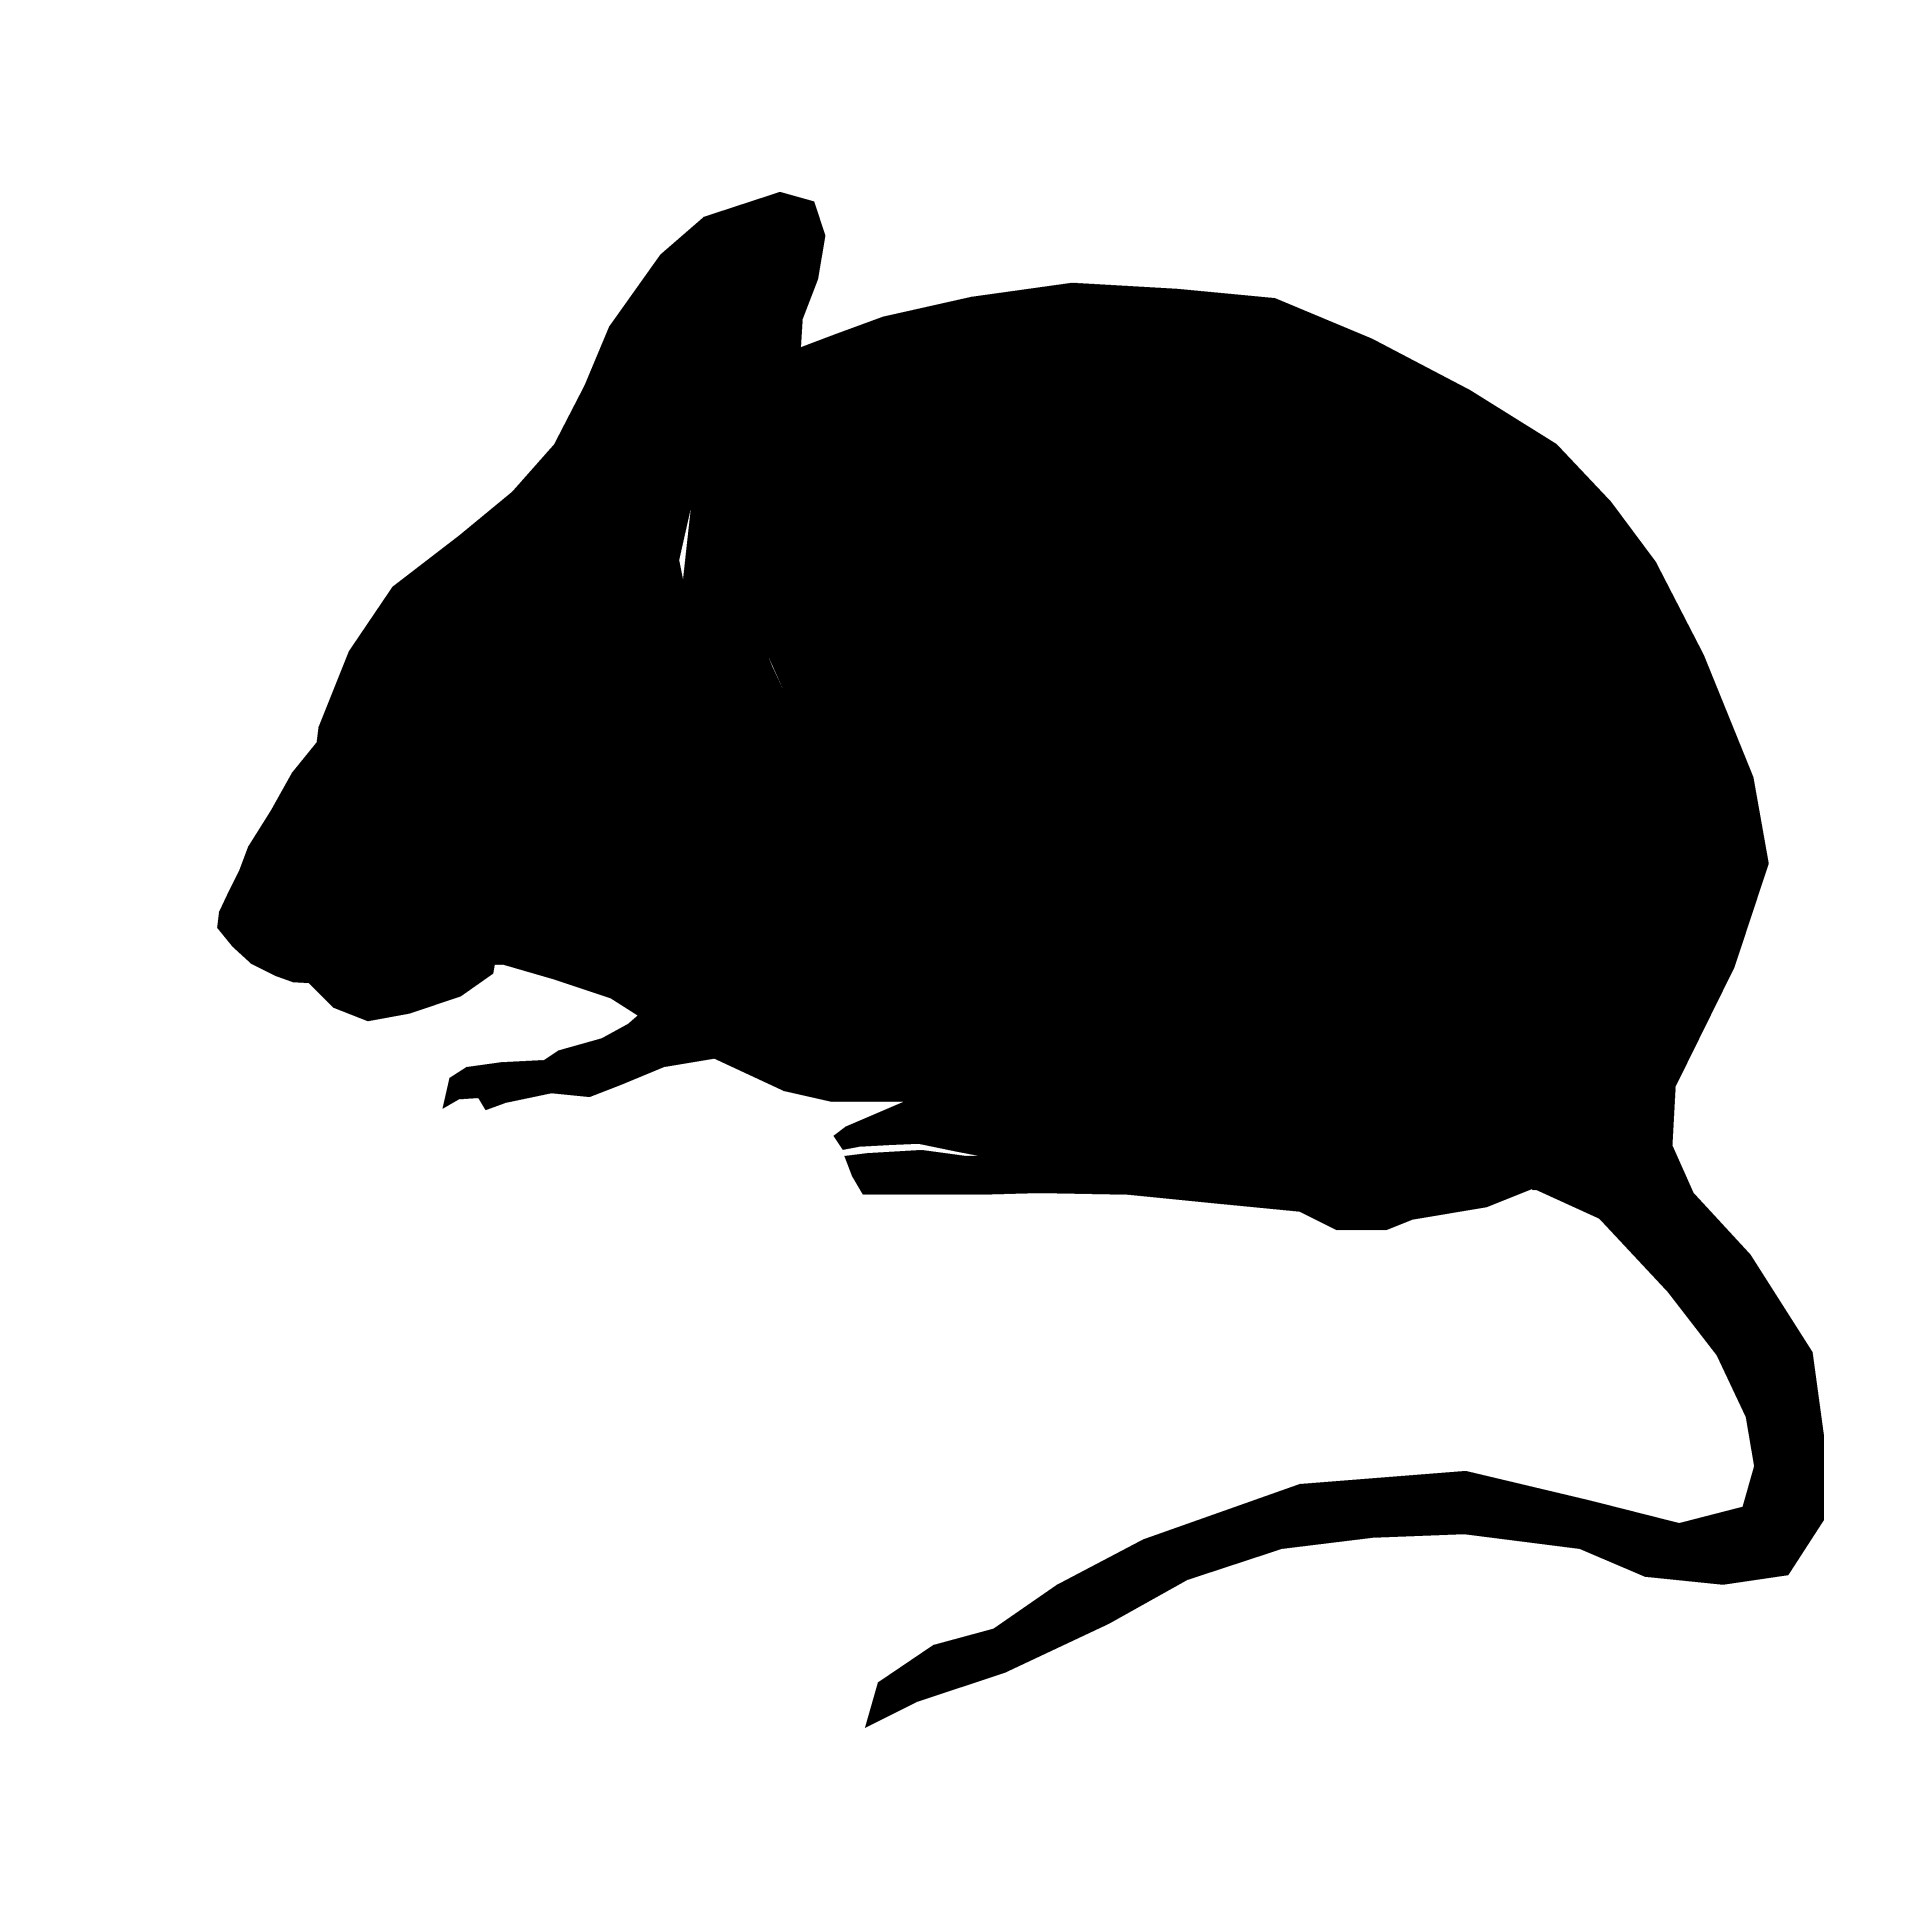 1920x1920 Silhouette Mouse Sitting Free Stock Photo